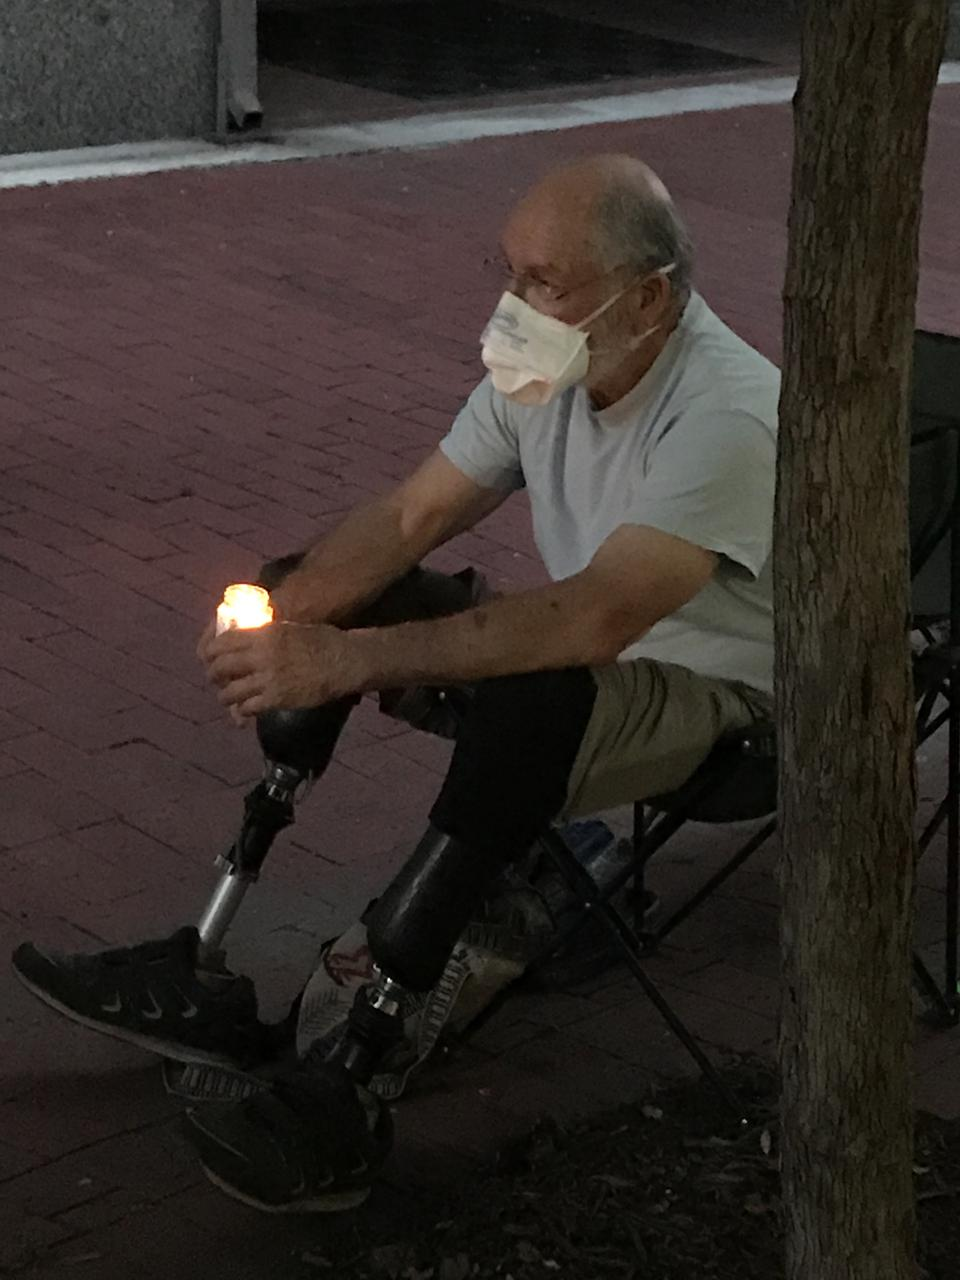 A double amputee from Vietnam War injuries attends a #BLM/George Floyd vigil